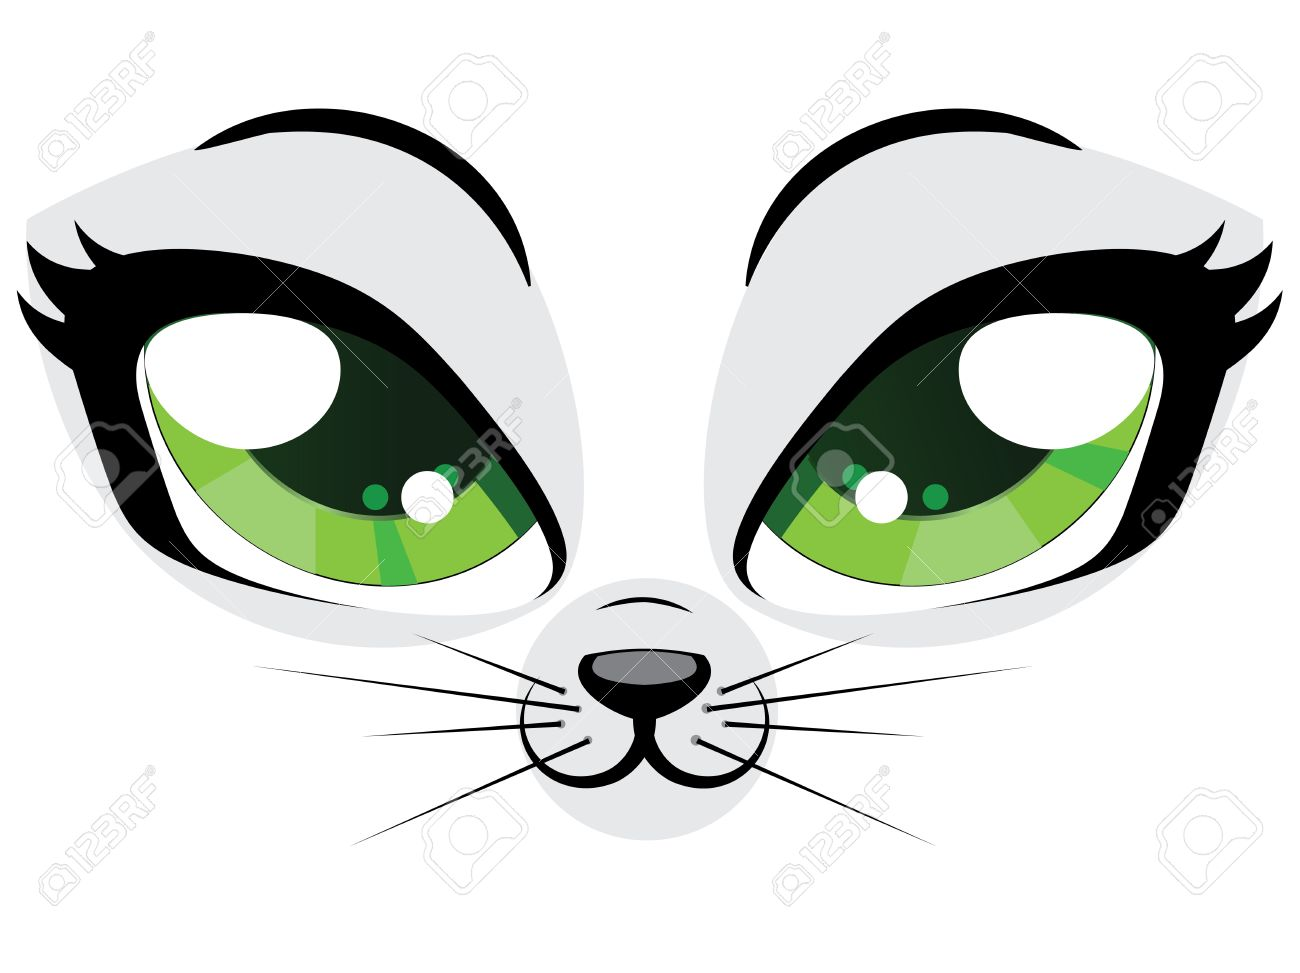 Image of: White Cute Cartoon Kitten Face With Green Eyes On White Background Stock Vector 25966557 123rfcom Cute Cartoon Kitten Face With Green Eyes On White Background